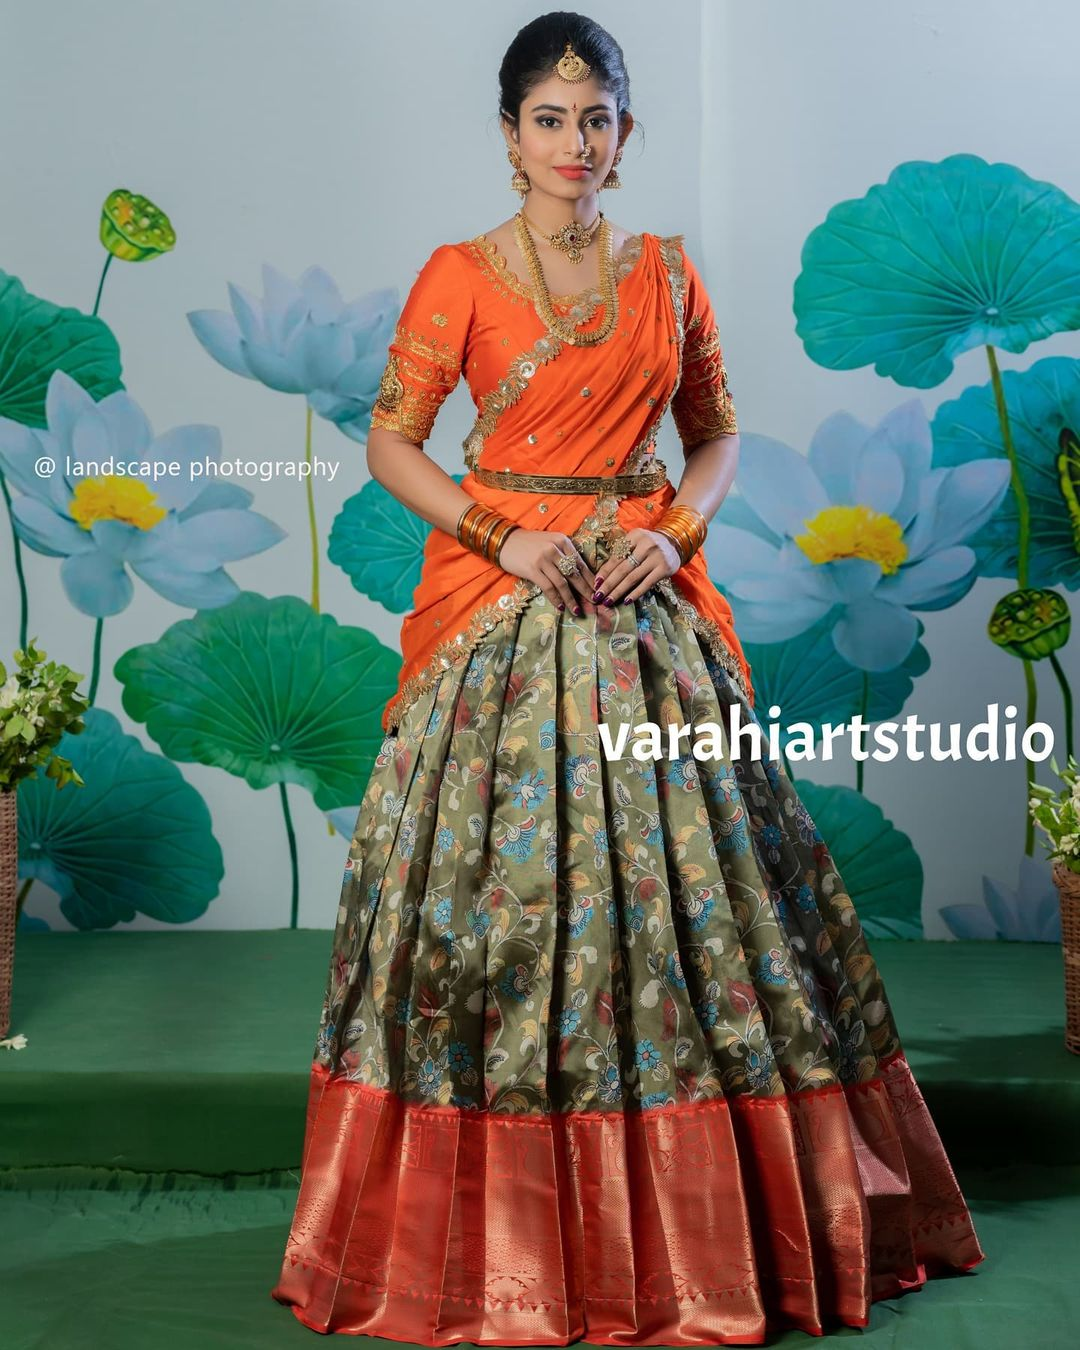 Gorgeous olive green floral big border pattu lehenga and orange blouse with dupatta. Blouse with hand embroidery work.  2021-08-05